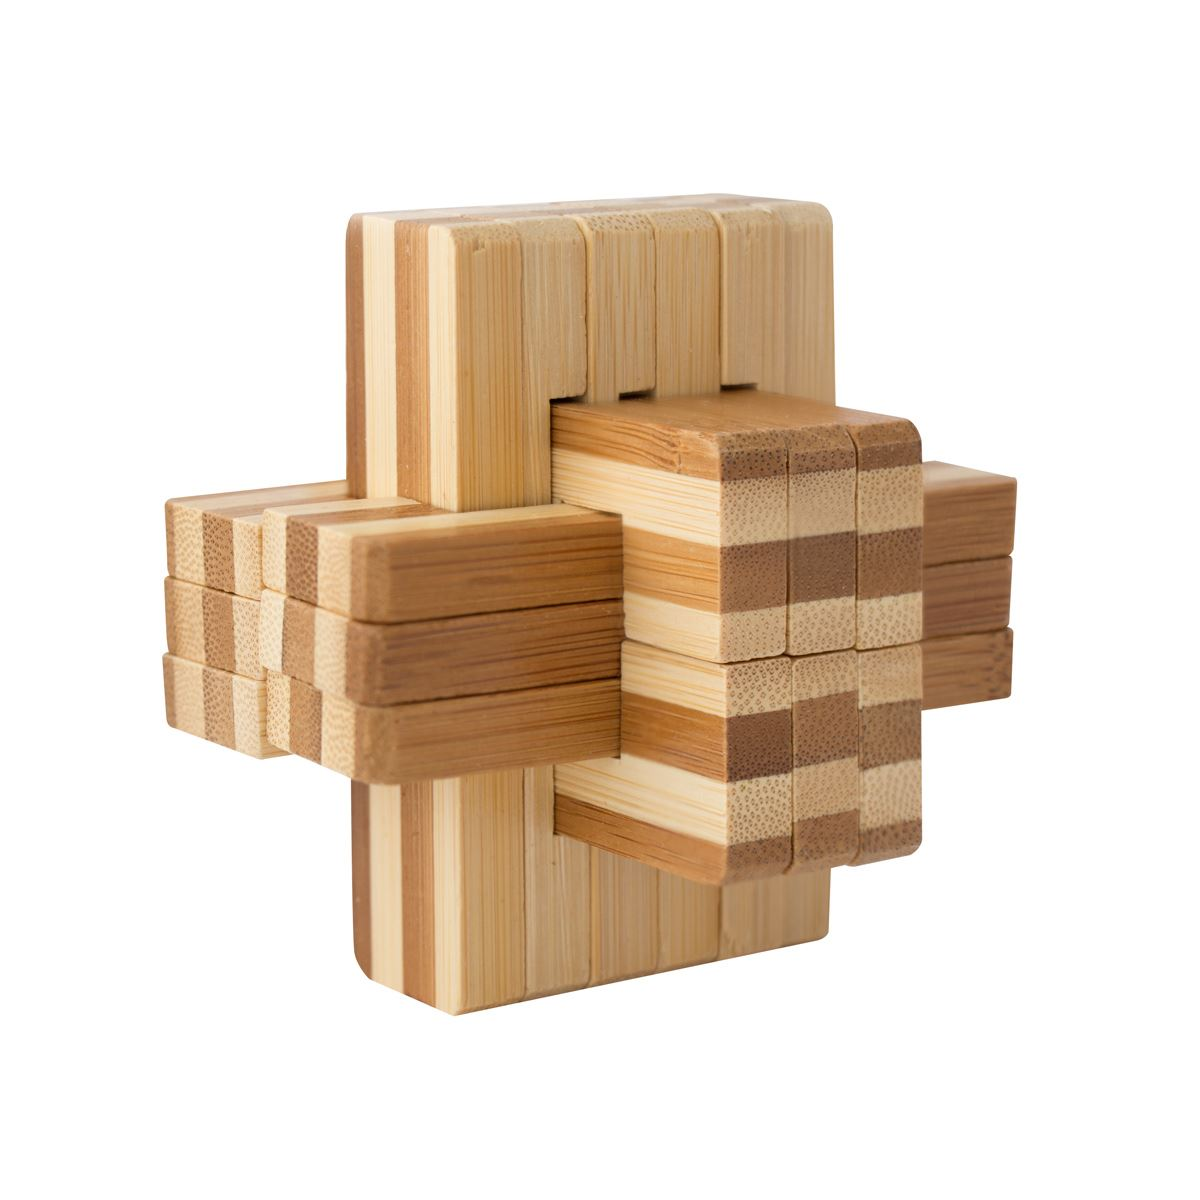 Natural bamboo wooden block cube puzzle